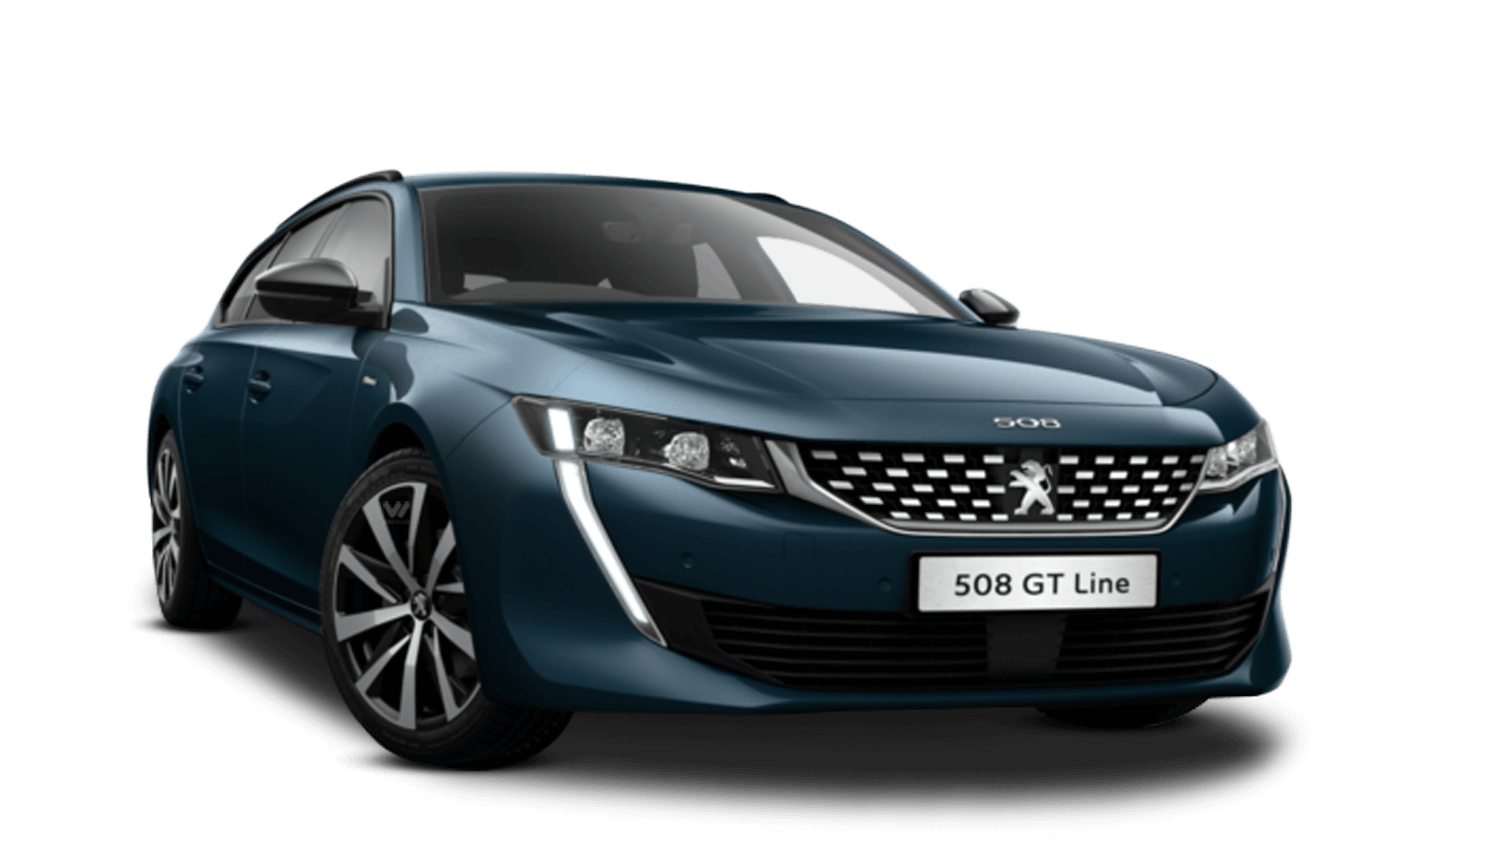 Celebes Blue All-New Peugeot 508 SW